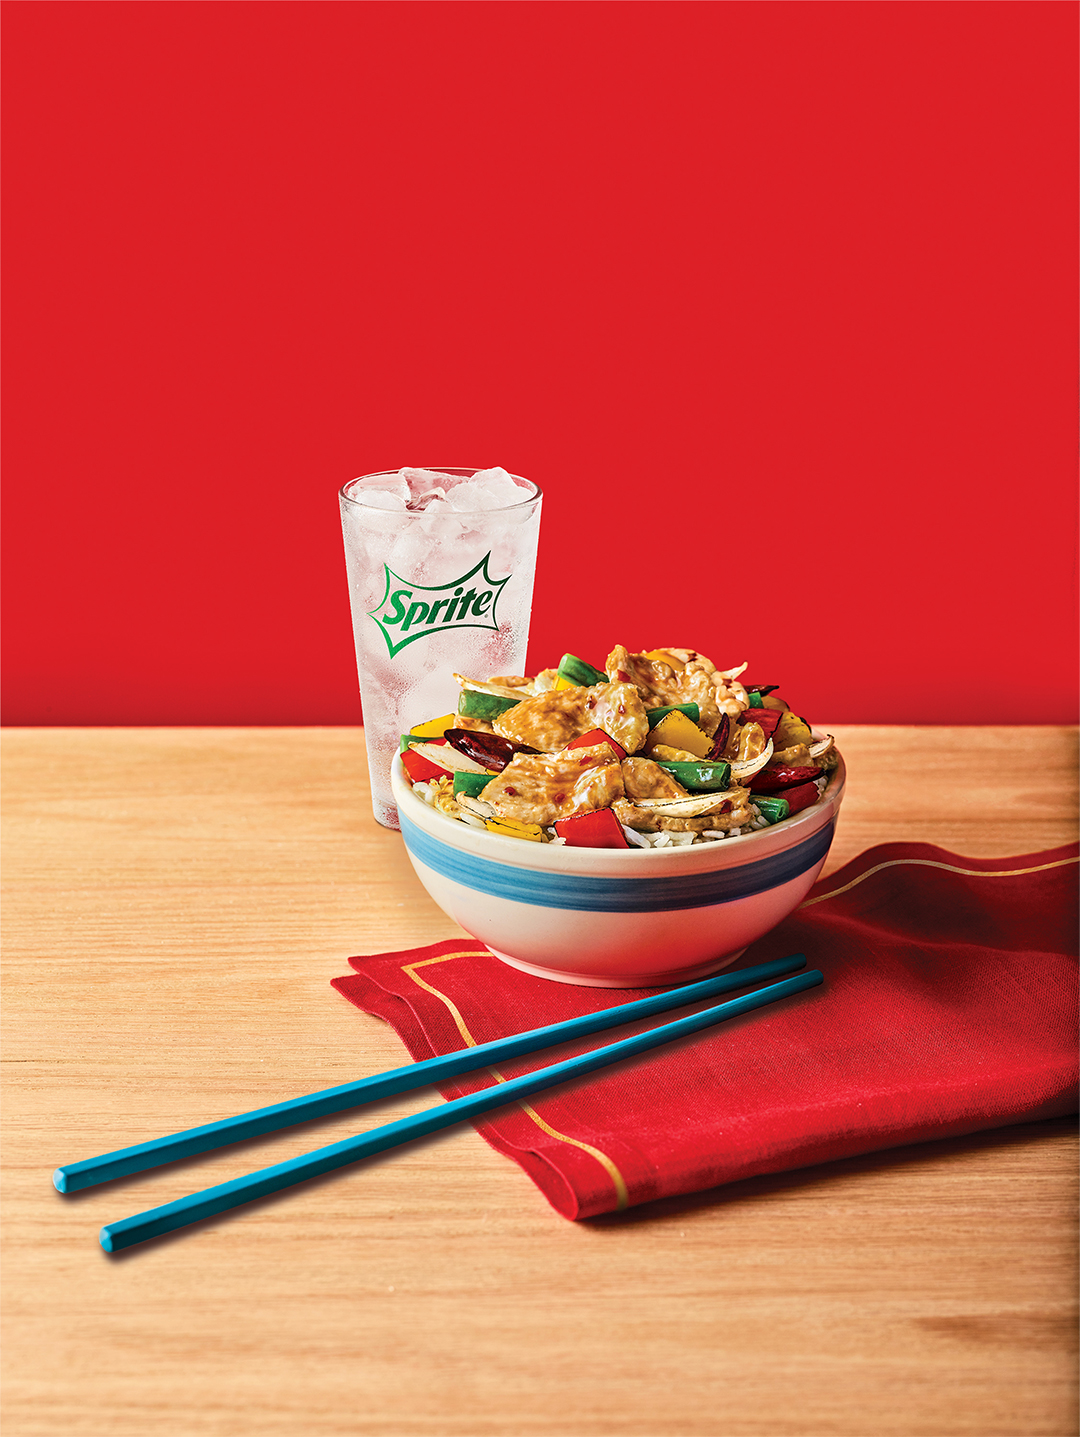 Panda Express Firecracker Chicken Bowl with cup of Sprite, on a wooden table.